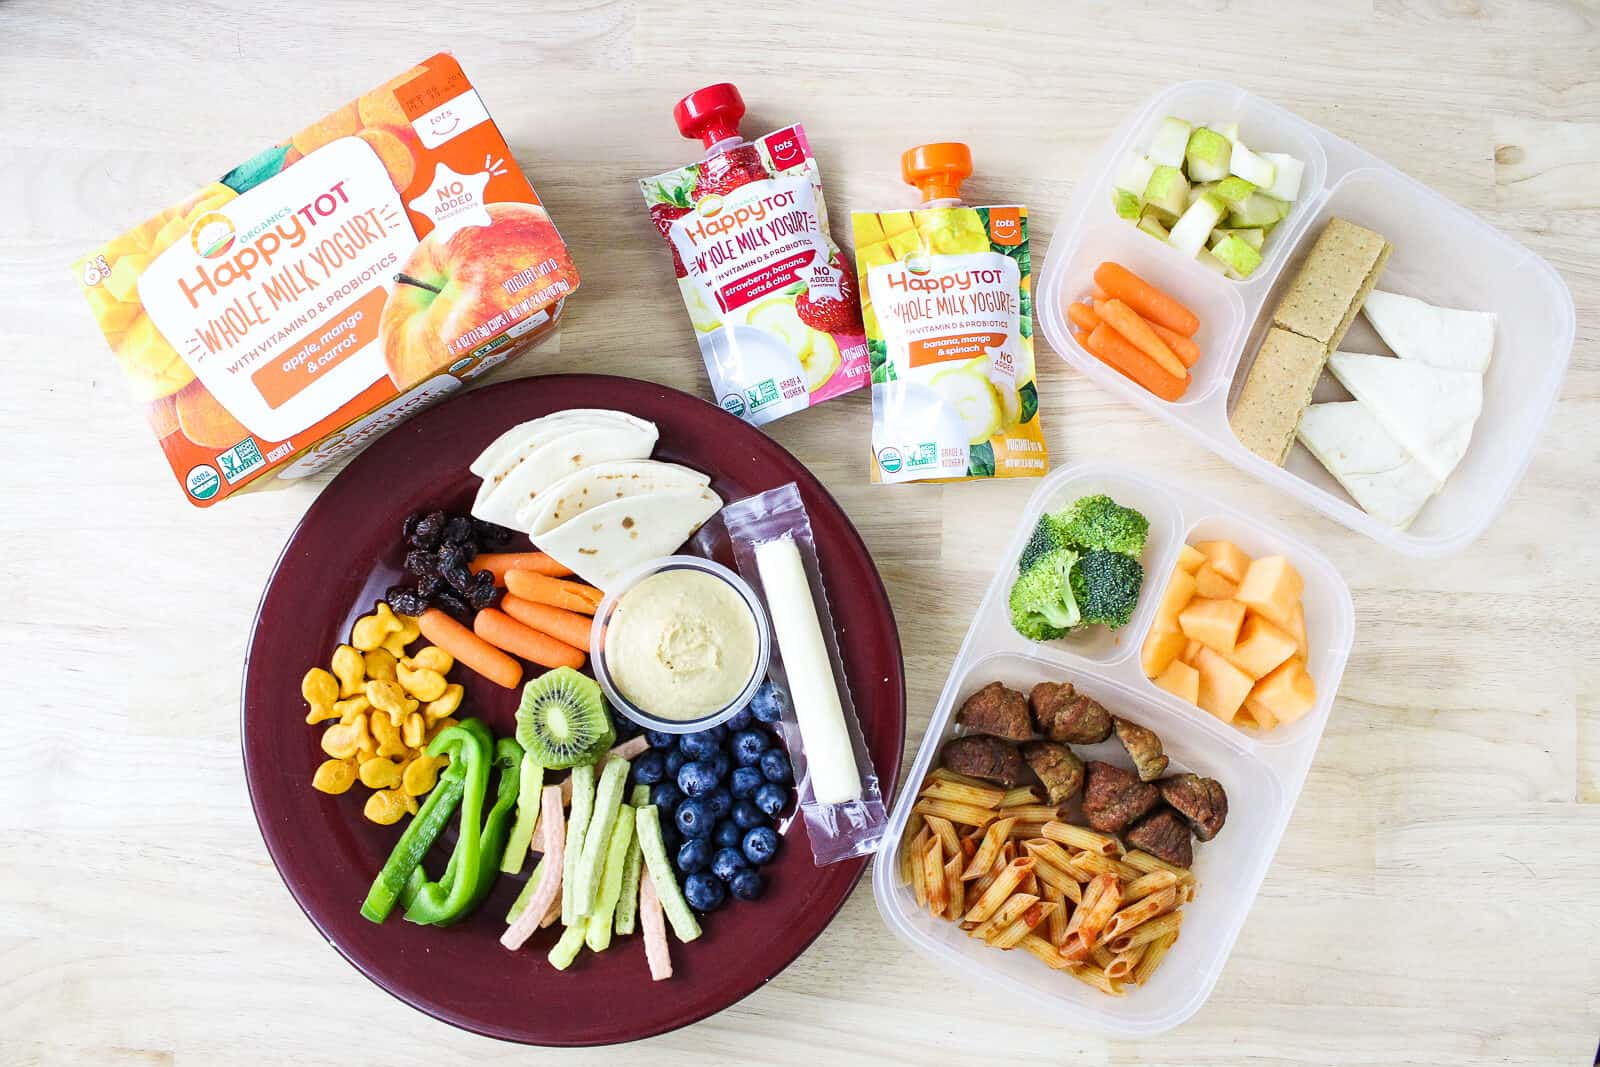 Toddler friendly food on a plate and in a lunchbox